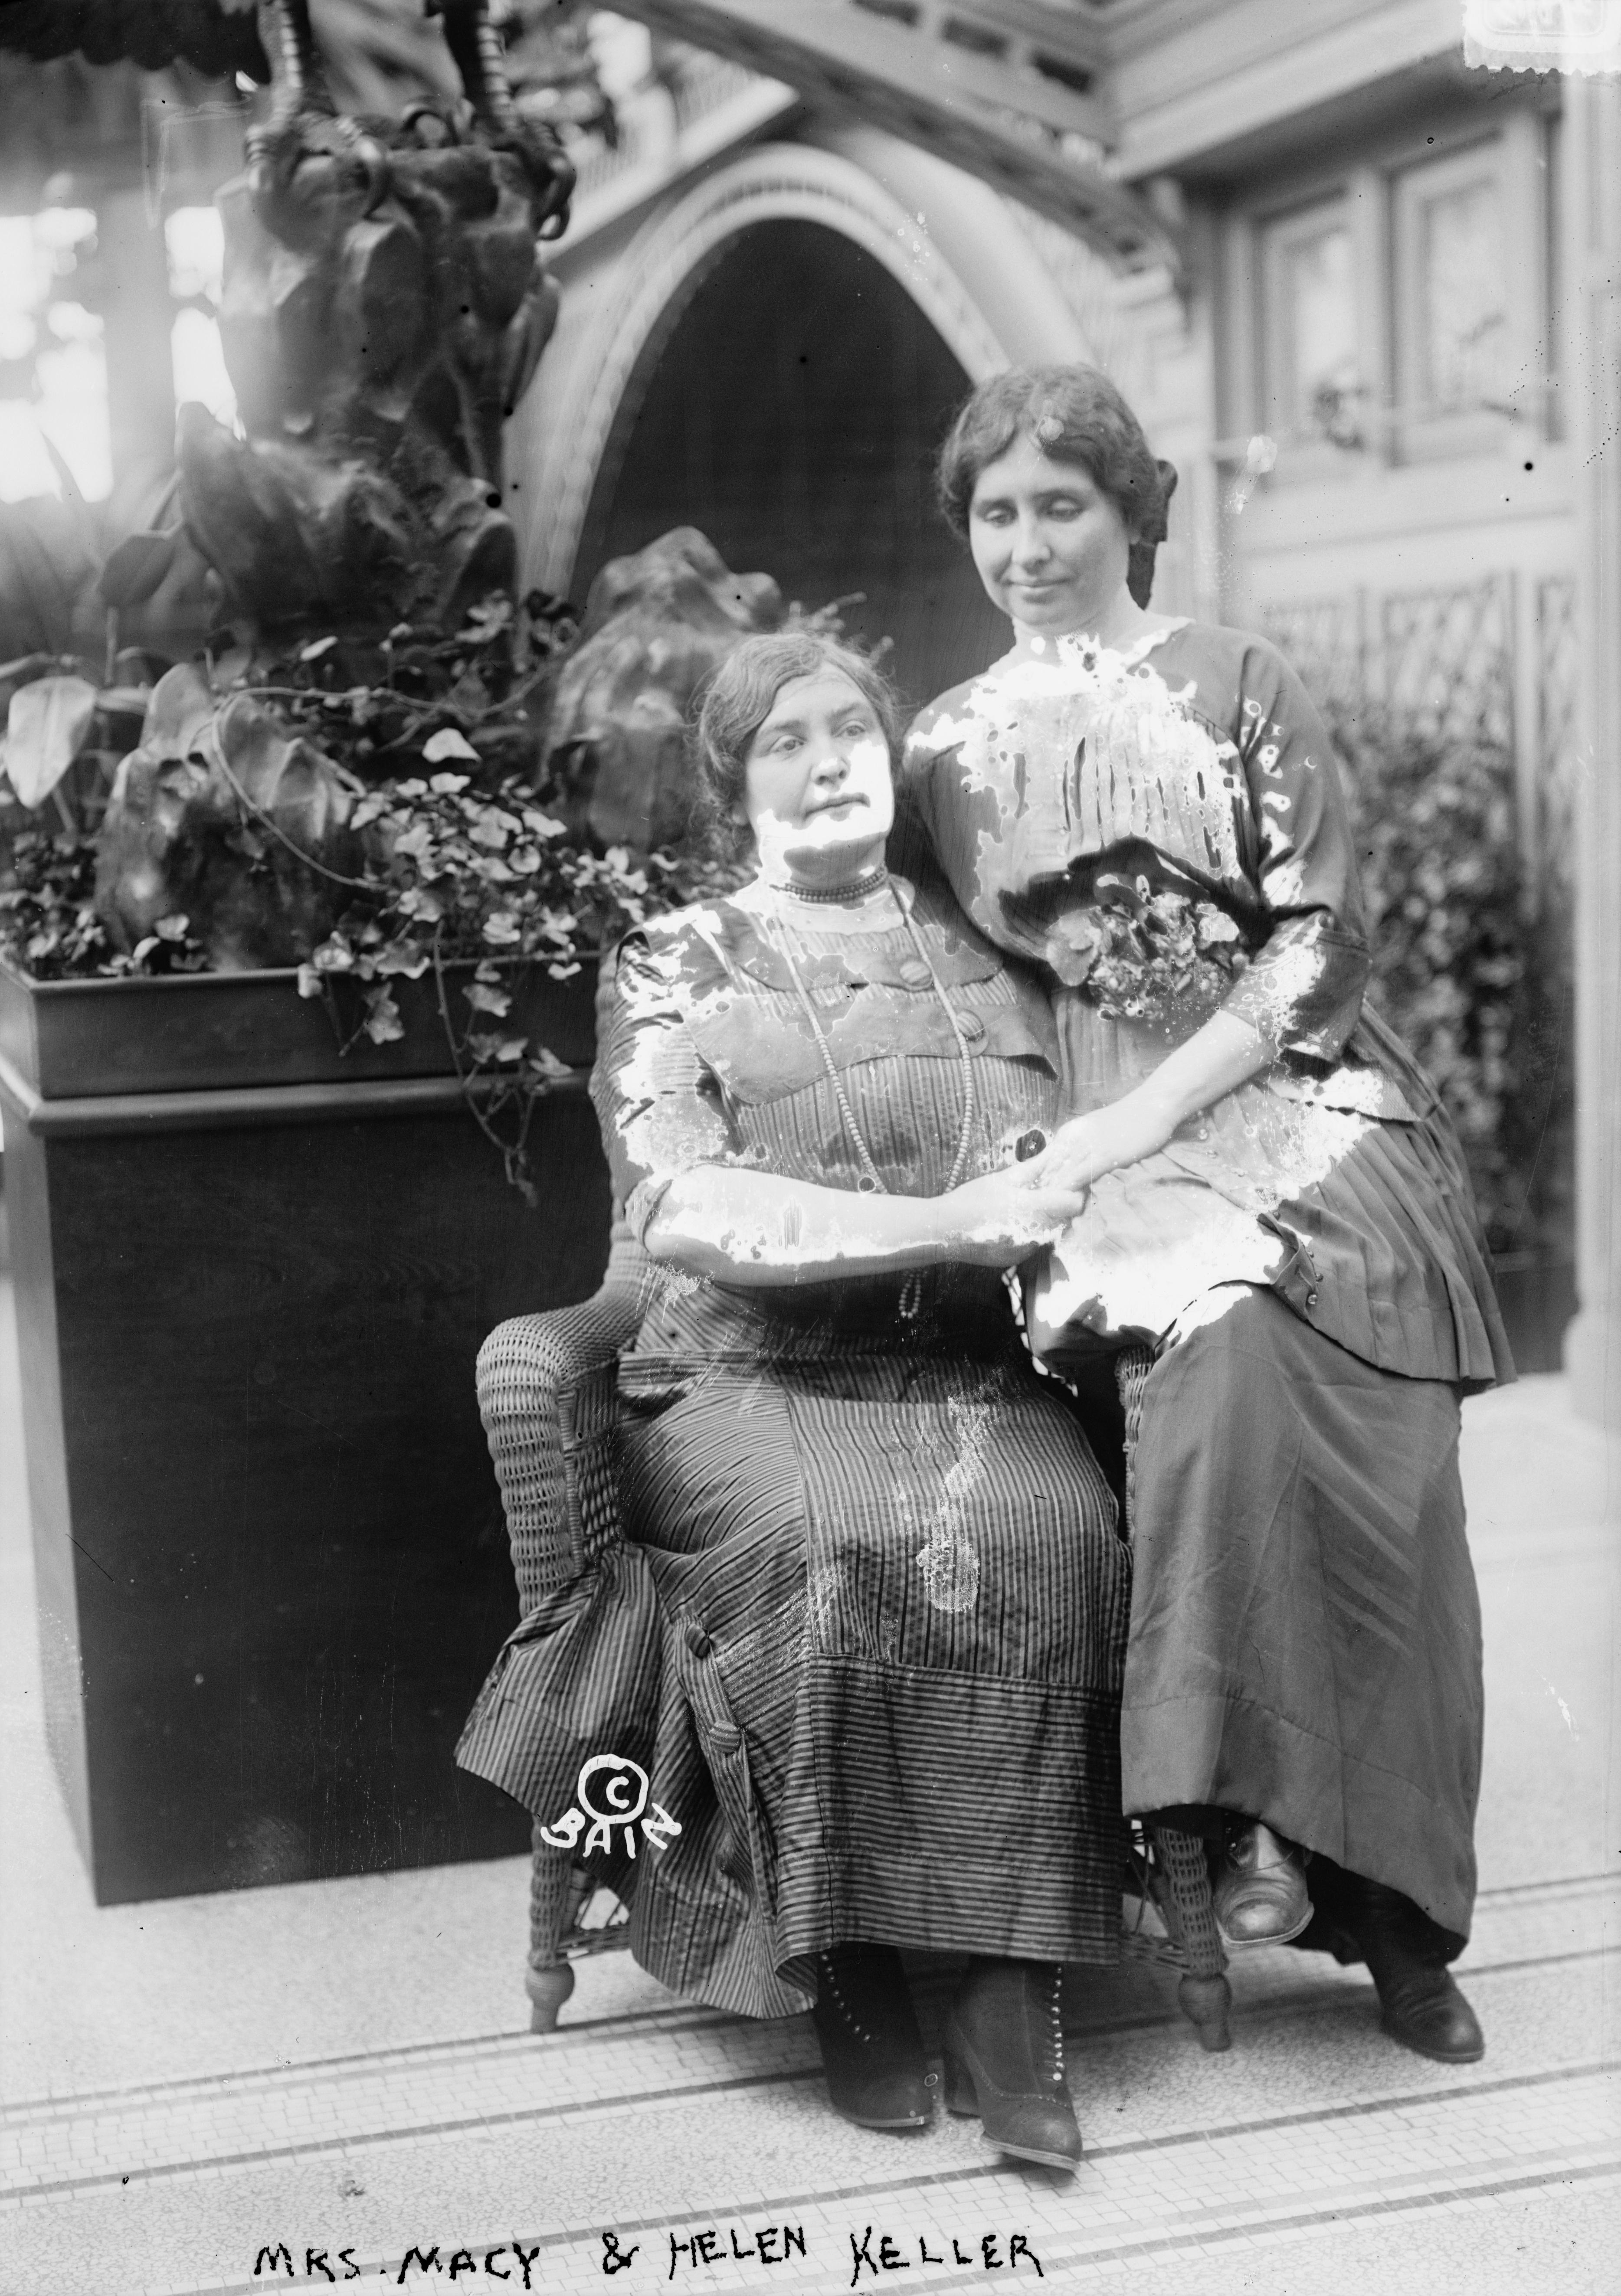 a history of annie sullivan the teacher of helen keller The my hero project has been using media to but a devoted friend to helen keller anne sullivan is someone anne sullivan - teacher to helen keller about.